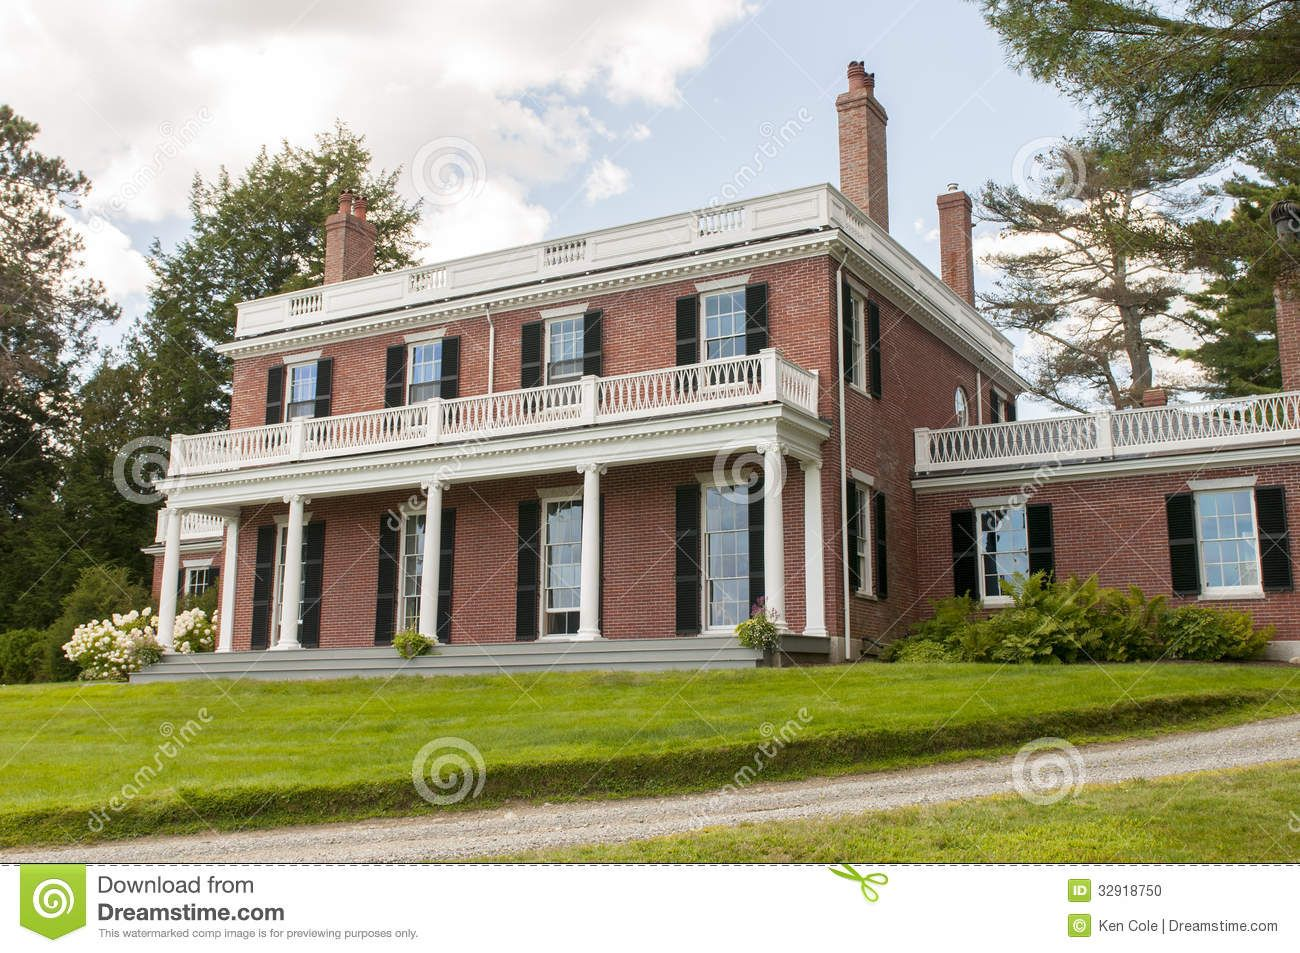 Federal Architecture Exterior Of An Old Elegant Brick Mansion Or Estate House Architecture Exterior Craftsman House Plans Architectural Design House Plans